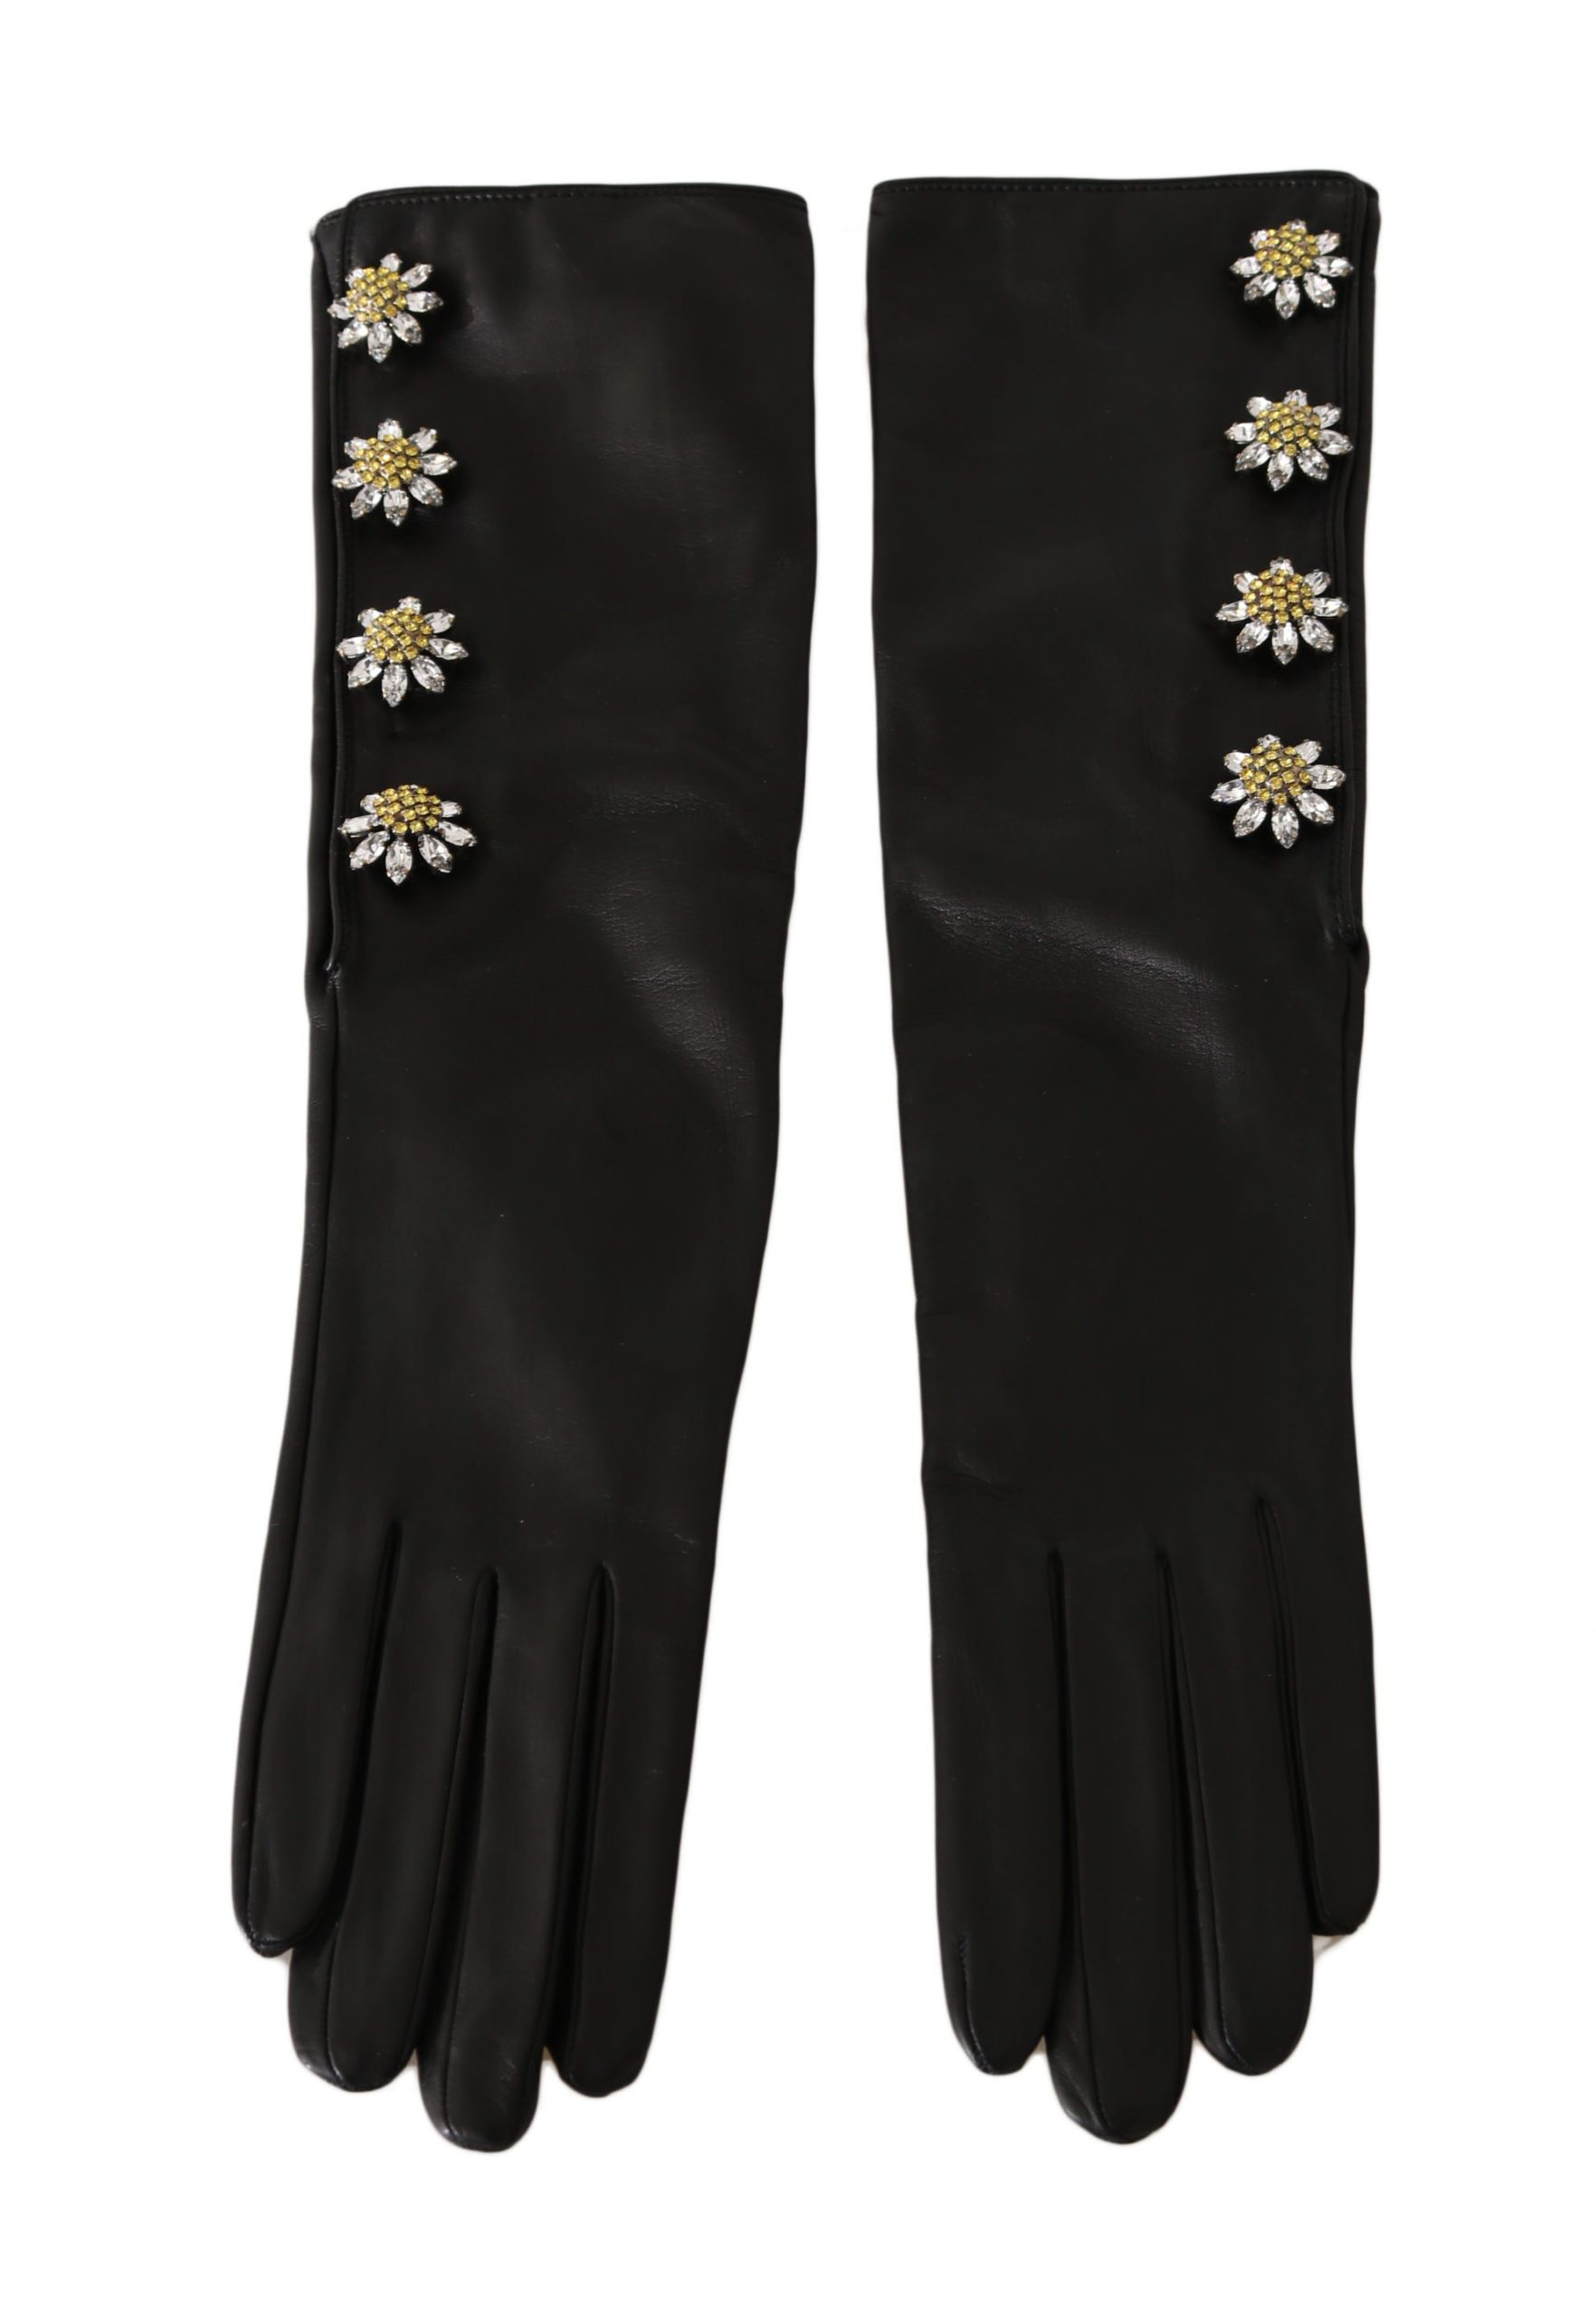 Dolce & Gabbana Women's Leather Crystal Elbow Gloves Black LB276 - 7.5 | S